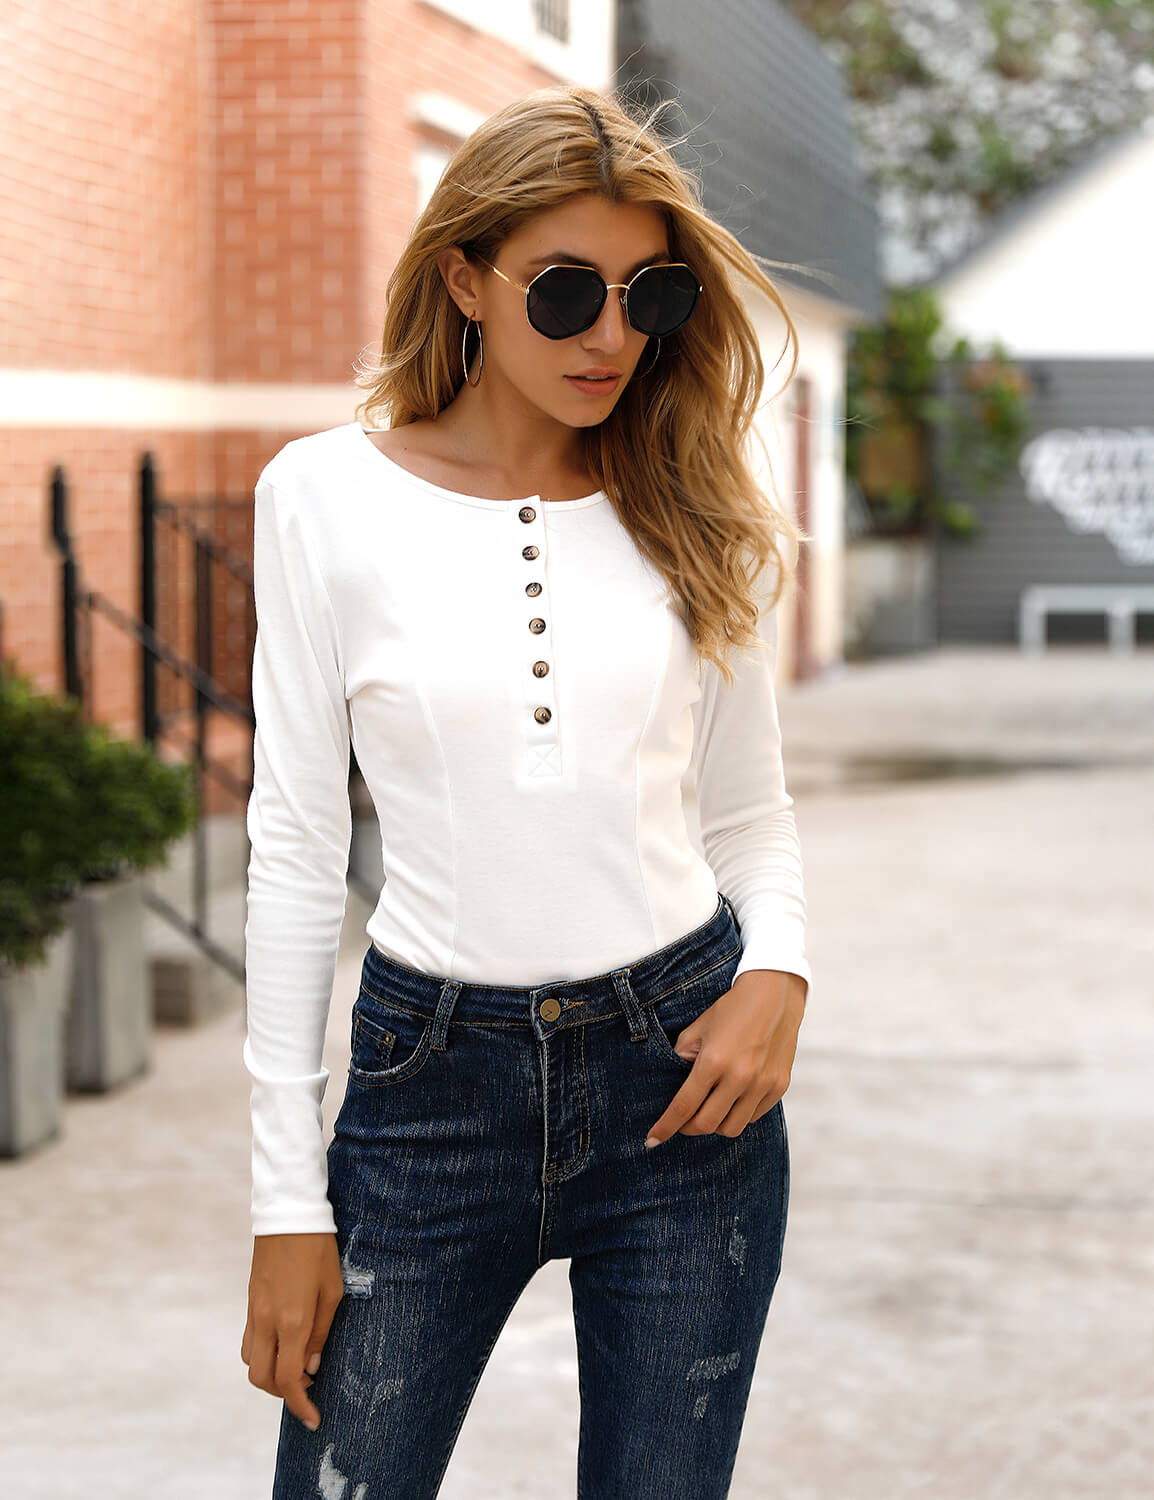 Blooming Jelly_My Muse Long Sleeve Basic Bodysuit_White_152687_19_Women Fashion Bodycon Outfits_/_Bodysuit